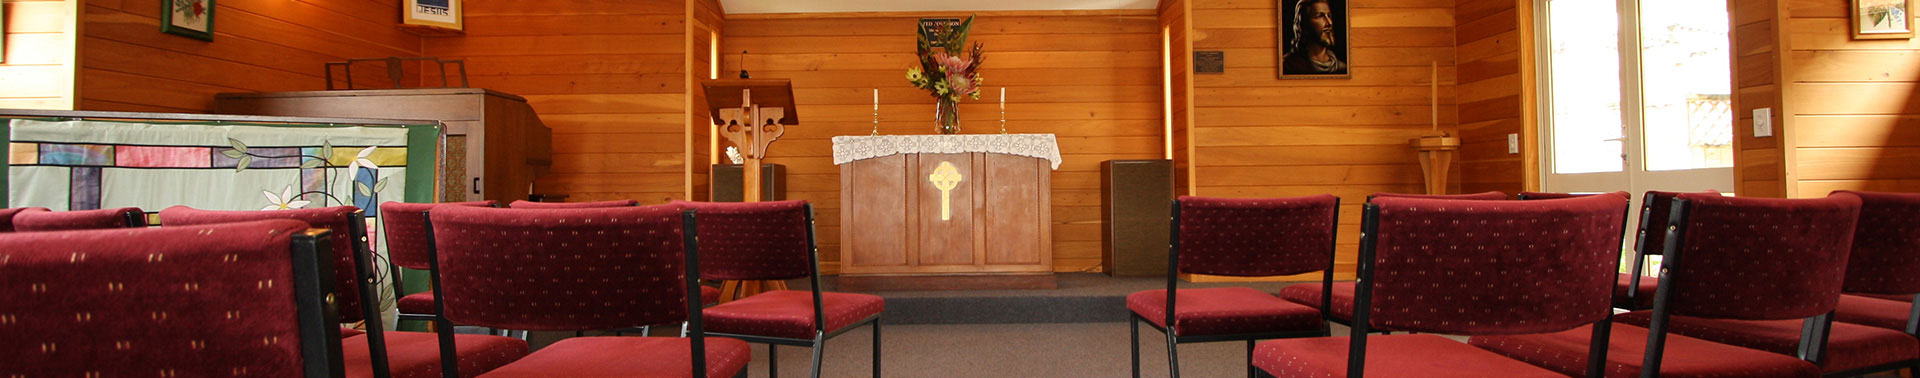 https://www.kerikerivillage.co.nz/uploads/images/chapel-banner.jpg